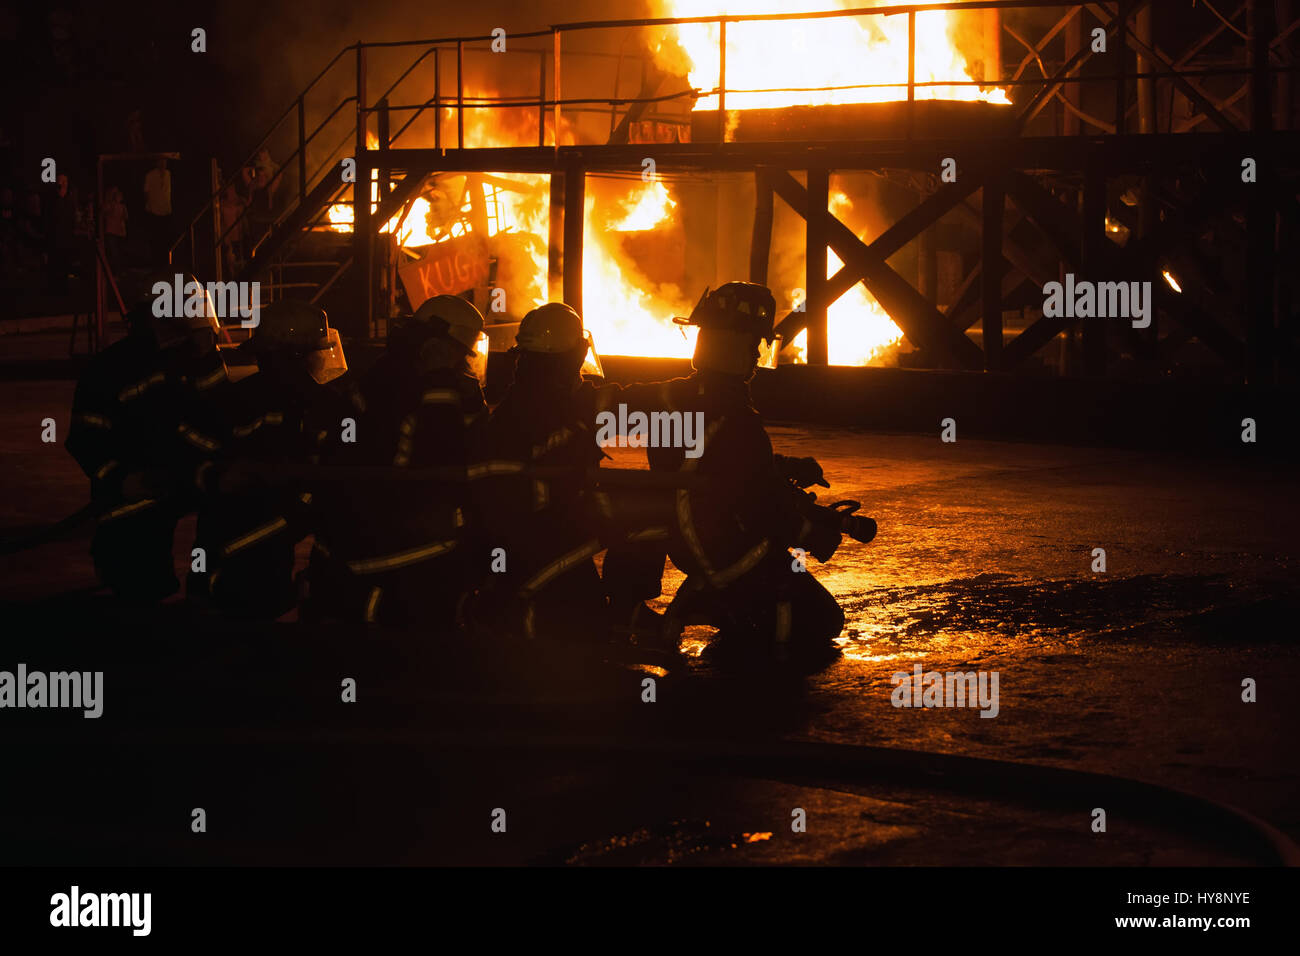 Group of firefighters kneeling in preparation to fight fire in firefighting exercise Stock Photo